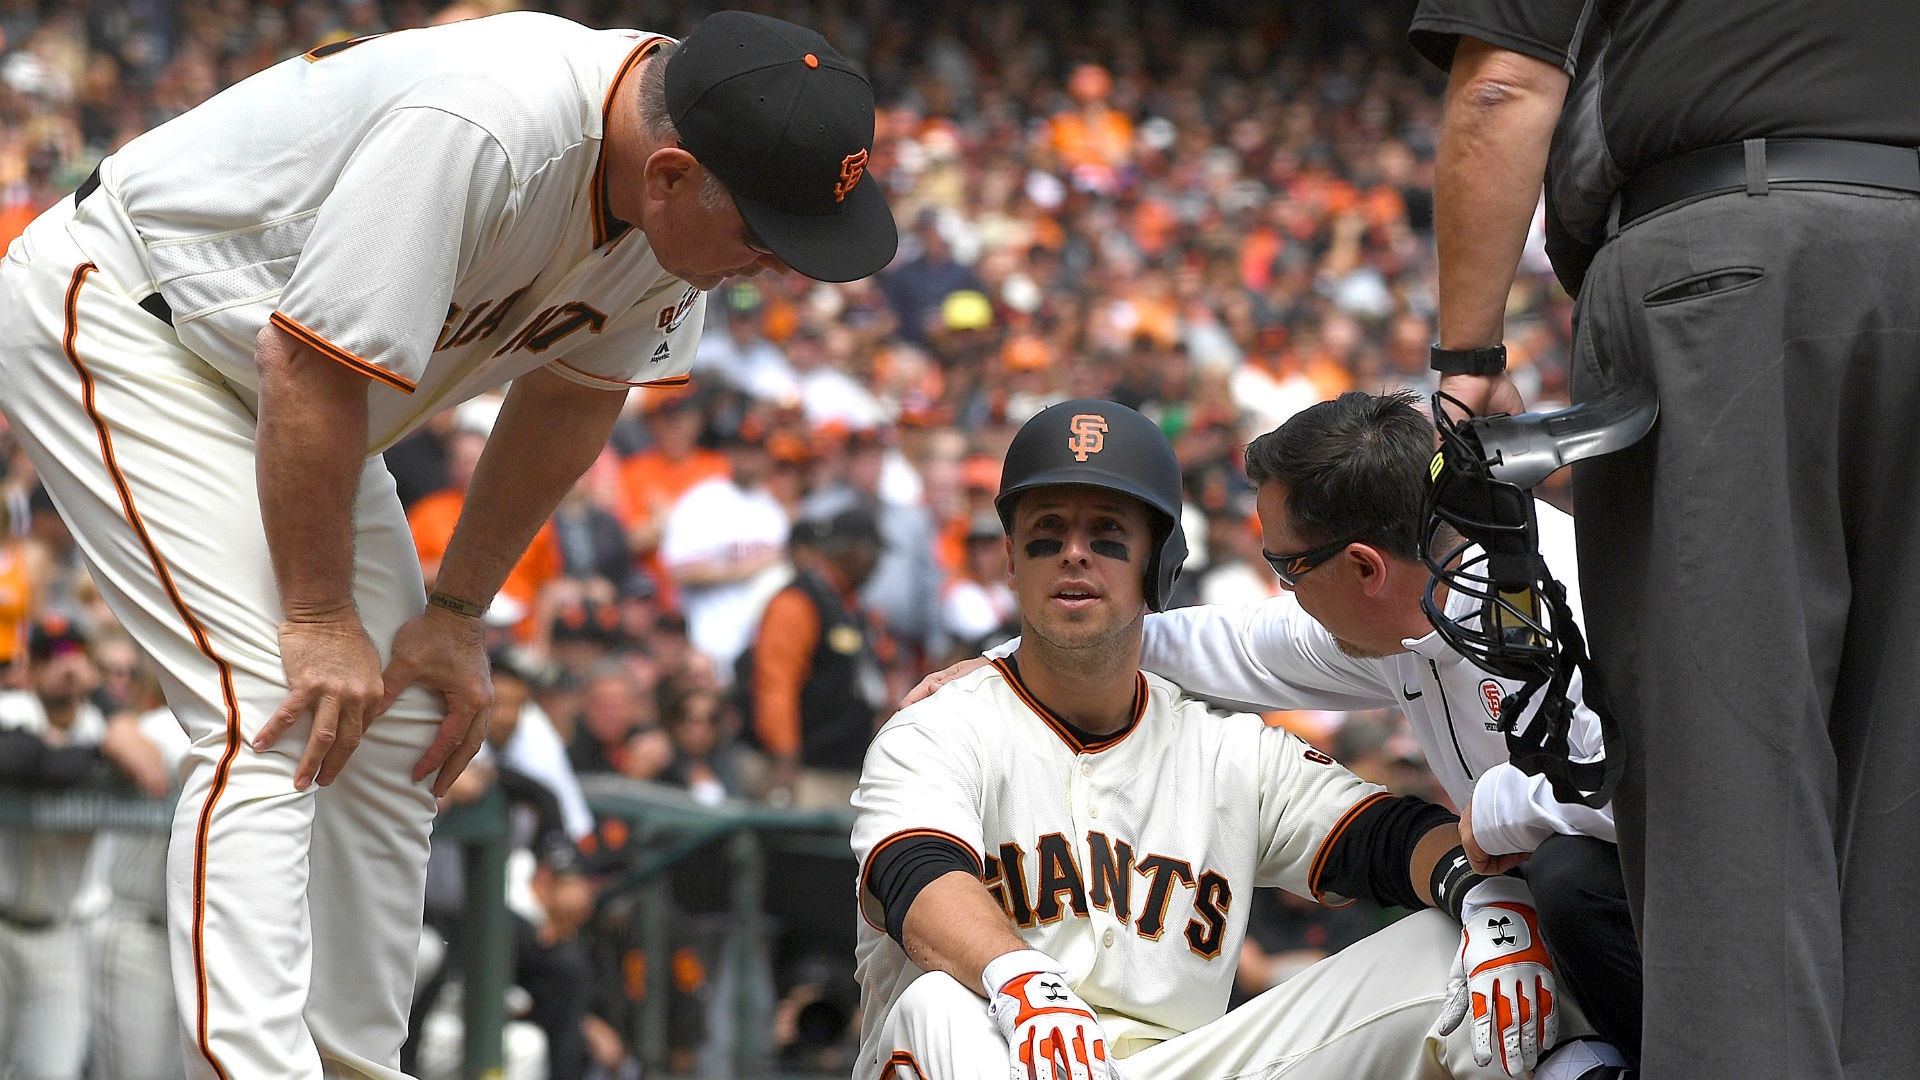 Giants place Buster Posey on DL after fastball to helmet | MLB | Sporting  News